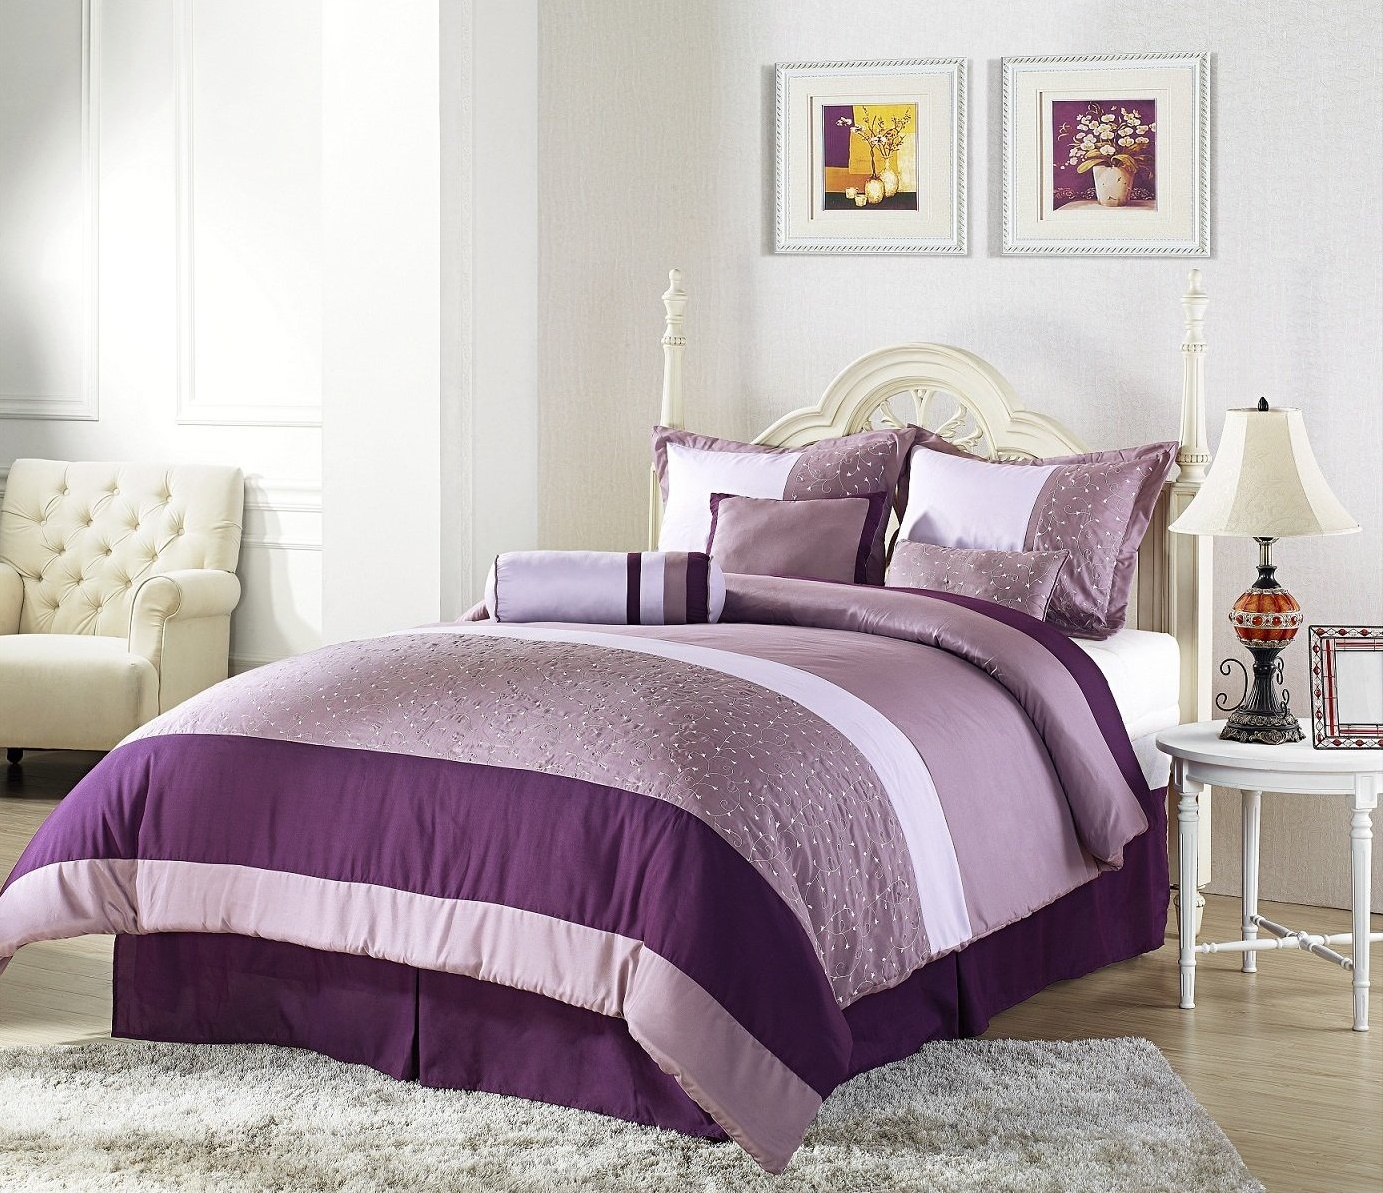 Purple Bedroom Ideas: The Wide Ranges Of Inspiring Purple Bedroom Ideas And Also